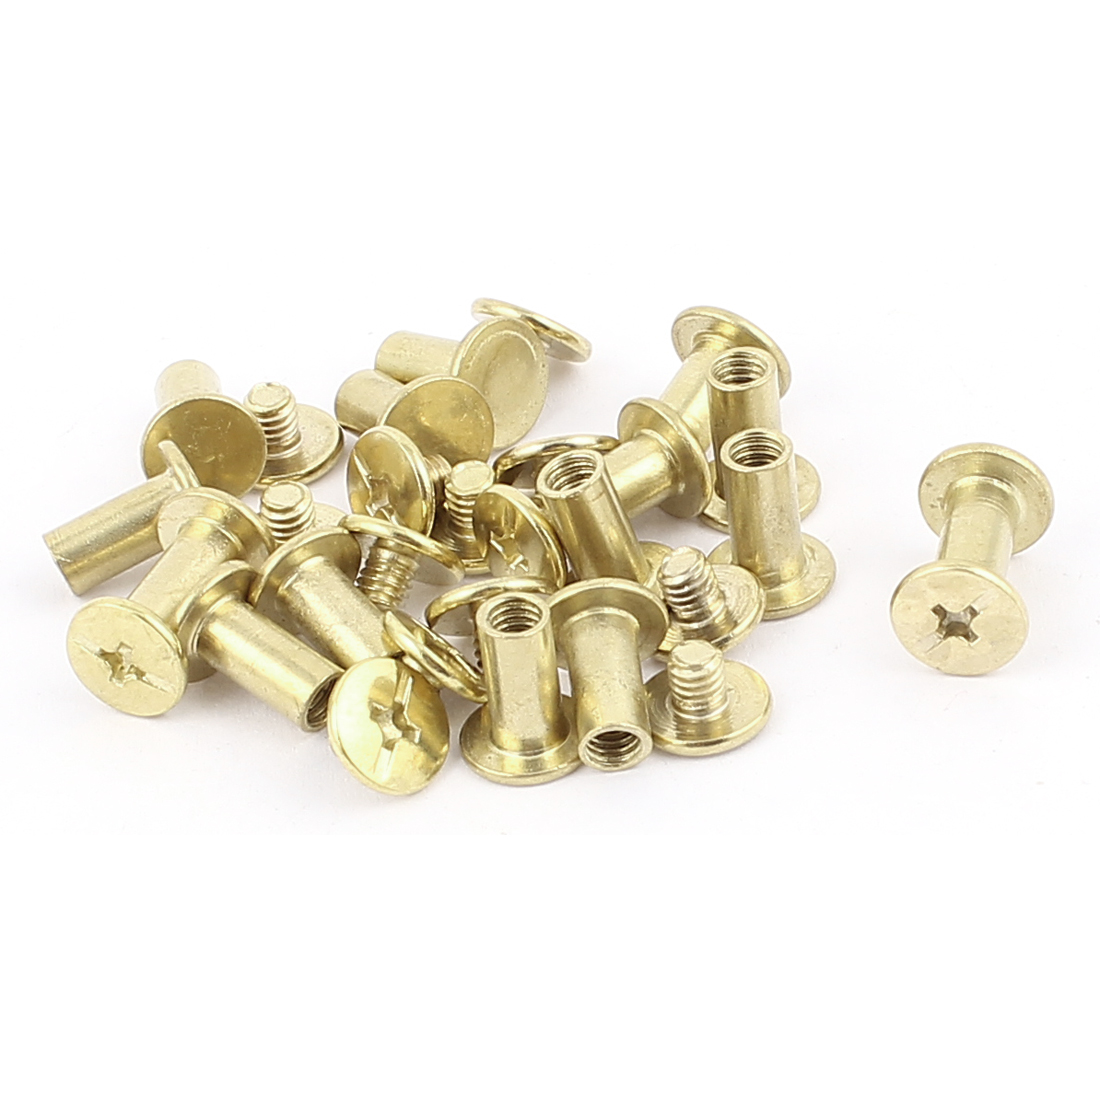 15pcs 5mmx10mm Brass Plated Binding Chicago Screw Post for Albums Scrapbook